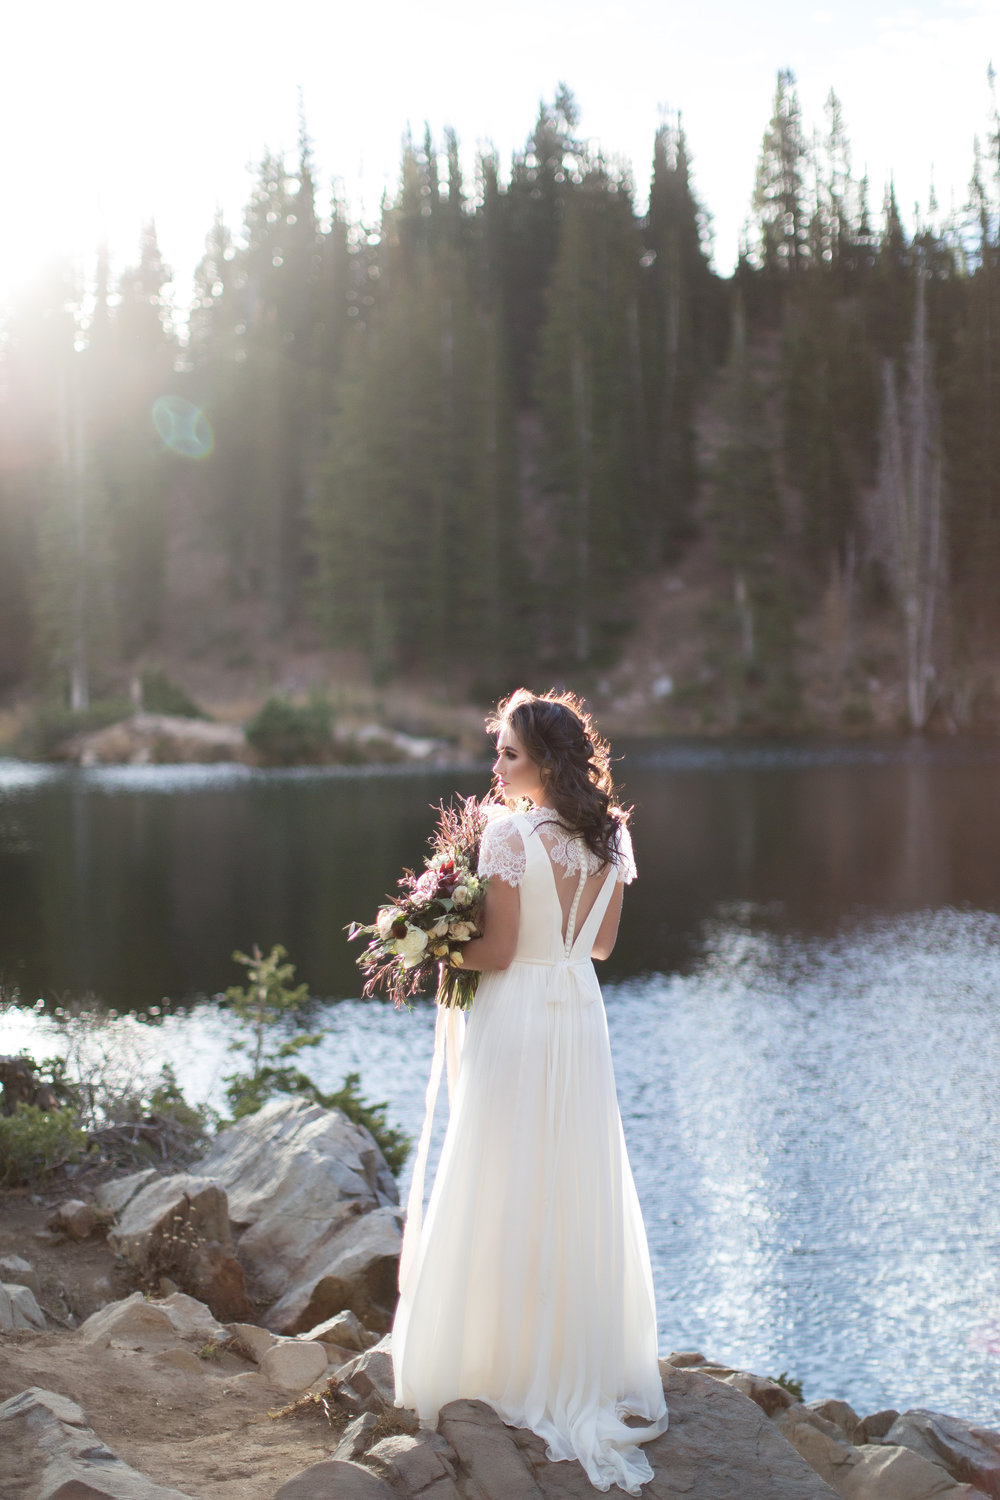 UtahValleyBrideShootTR2016 (87 of 110).jpg